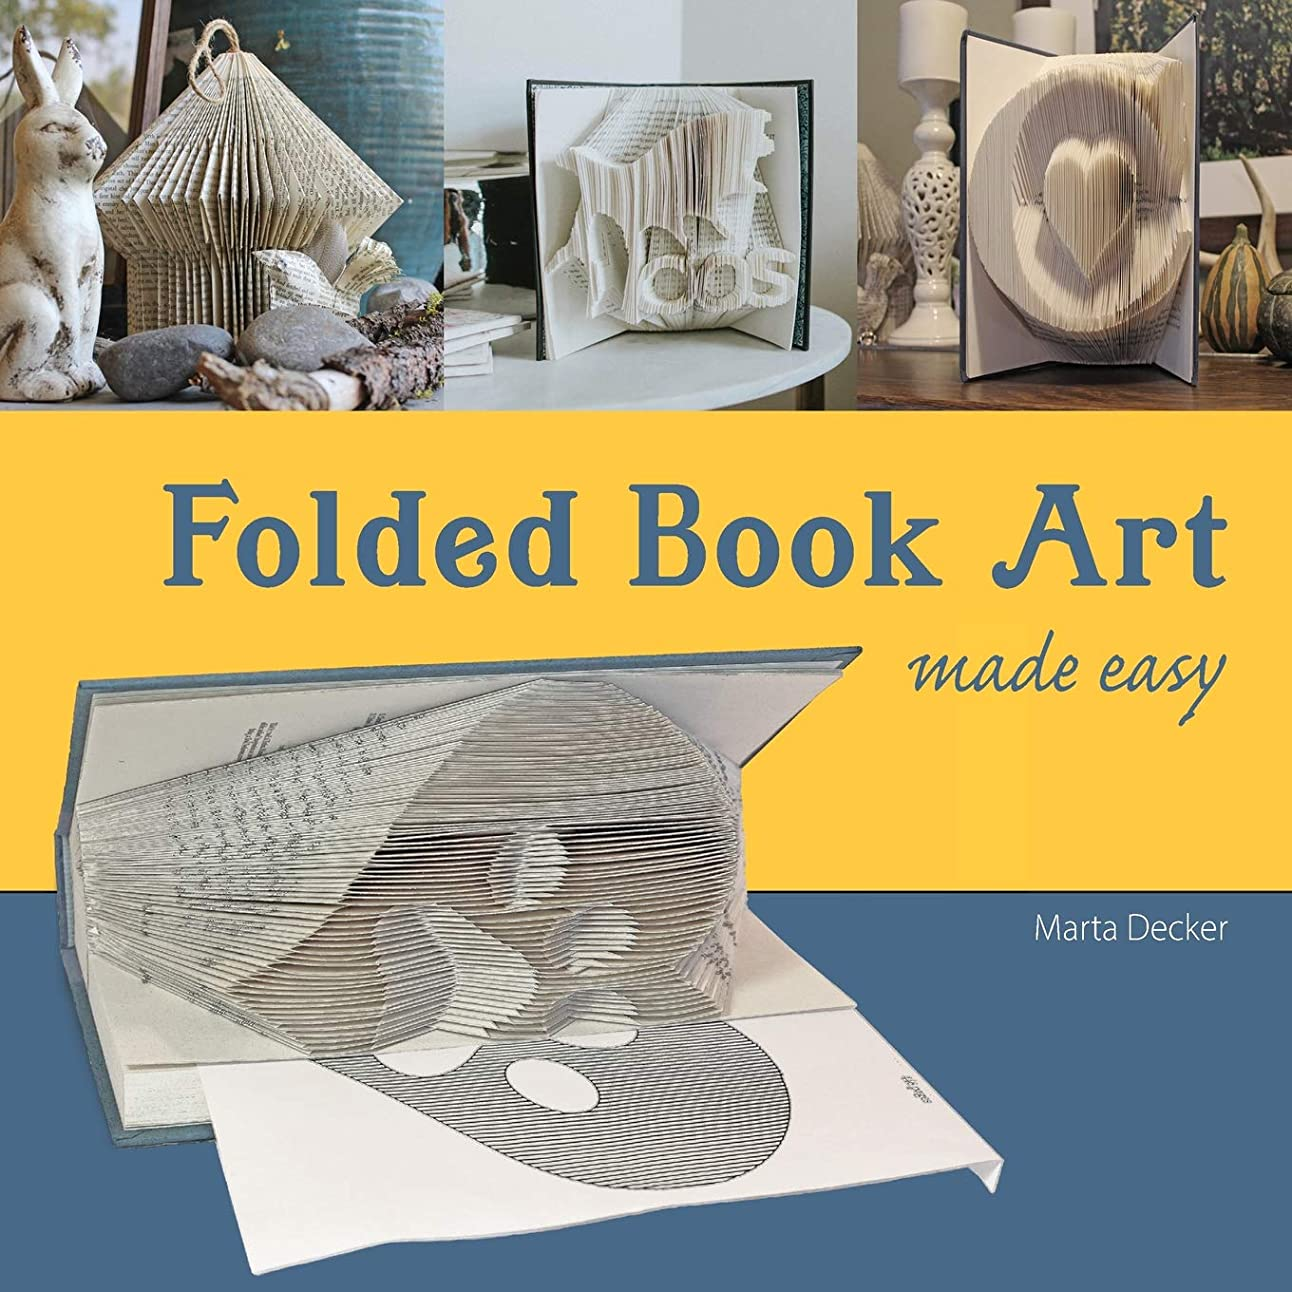 経済フクロウワーディアンケースFolded Book Art Made Easy: recycling books into beautiful folded sculptures